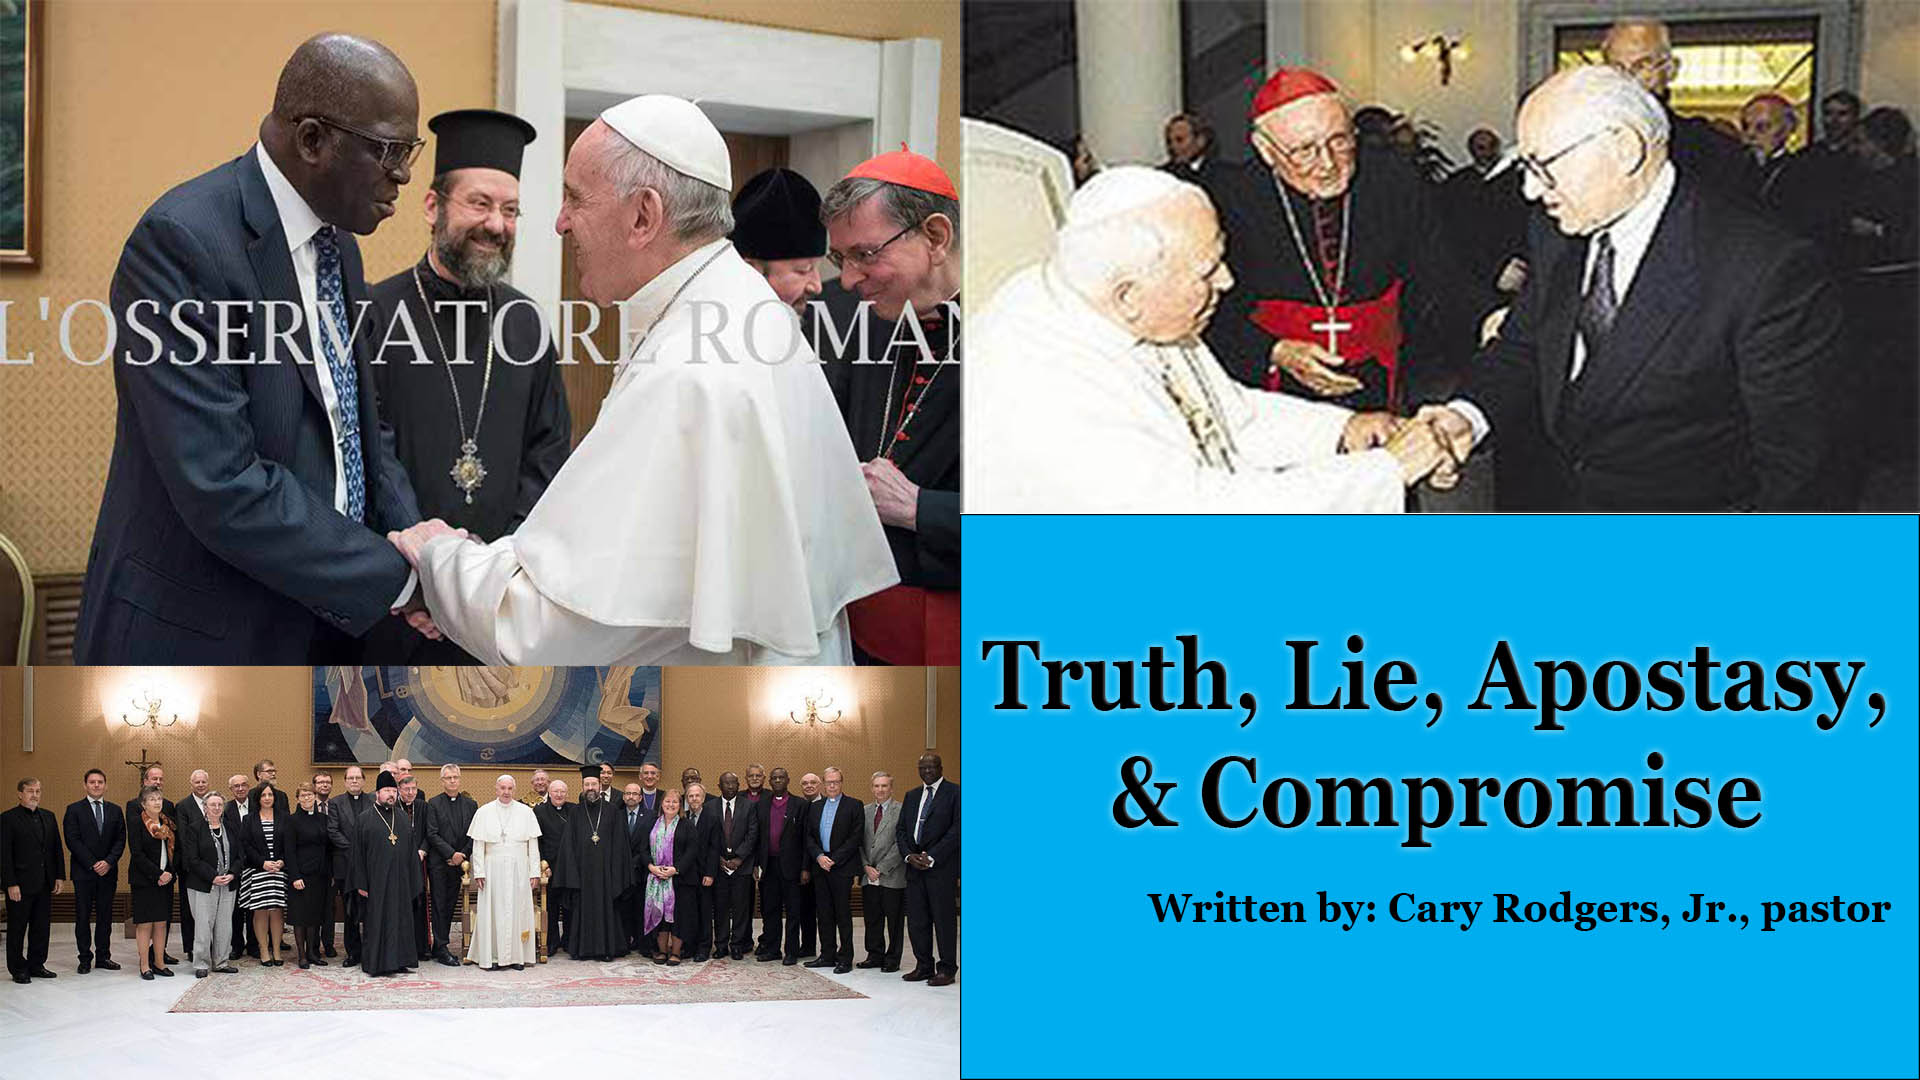 Truth, Lie, Apostasy, & Compromise